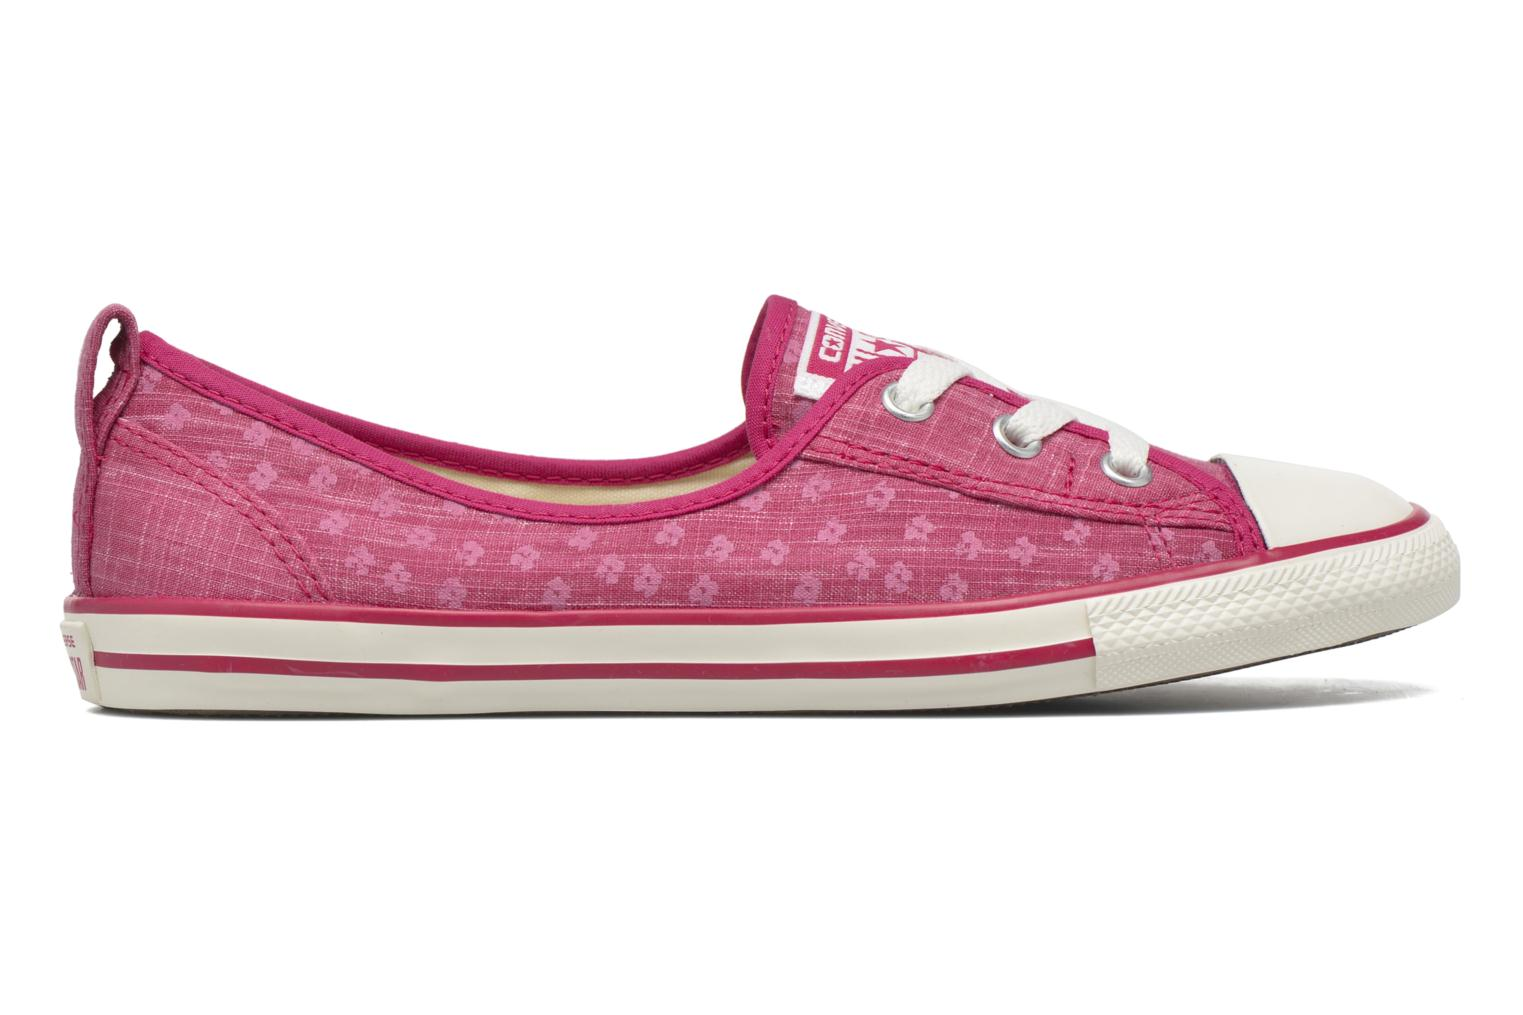 Baskets Converse Chuck Taylor All Star Ballet Lace Rose vue derrière